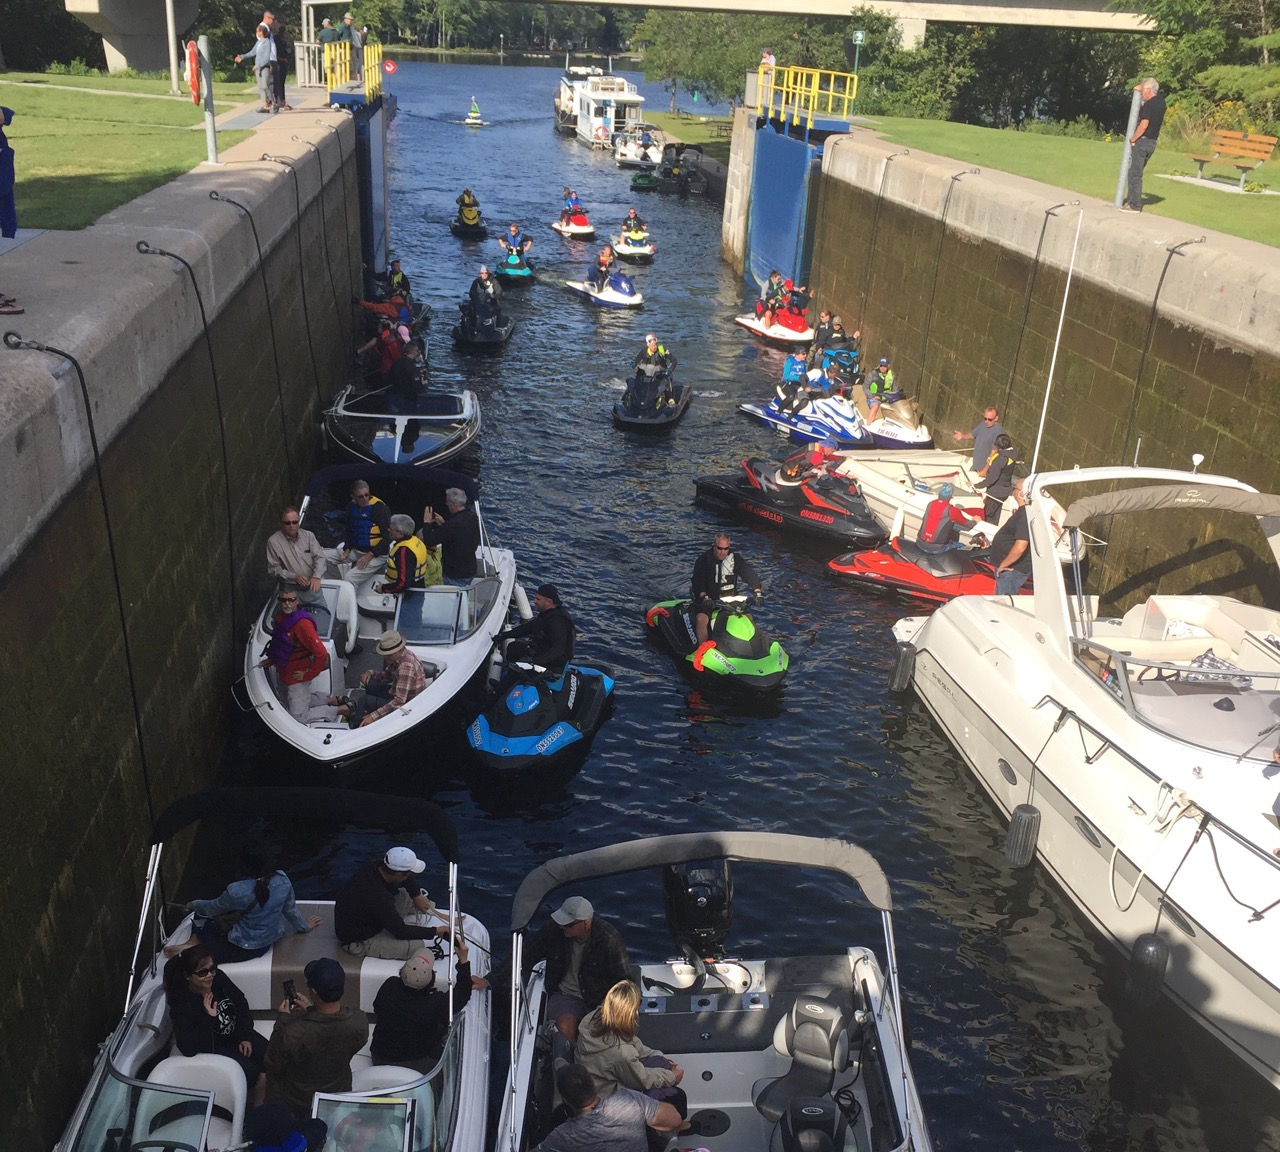 Locking thru on best trent severn waterway PWC day rides